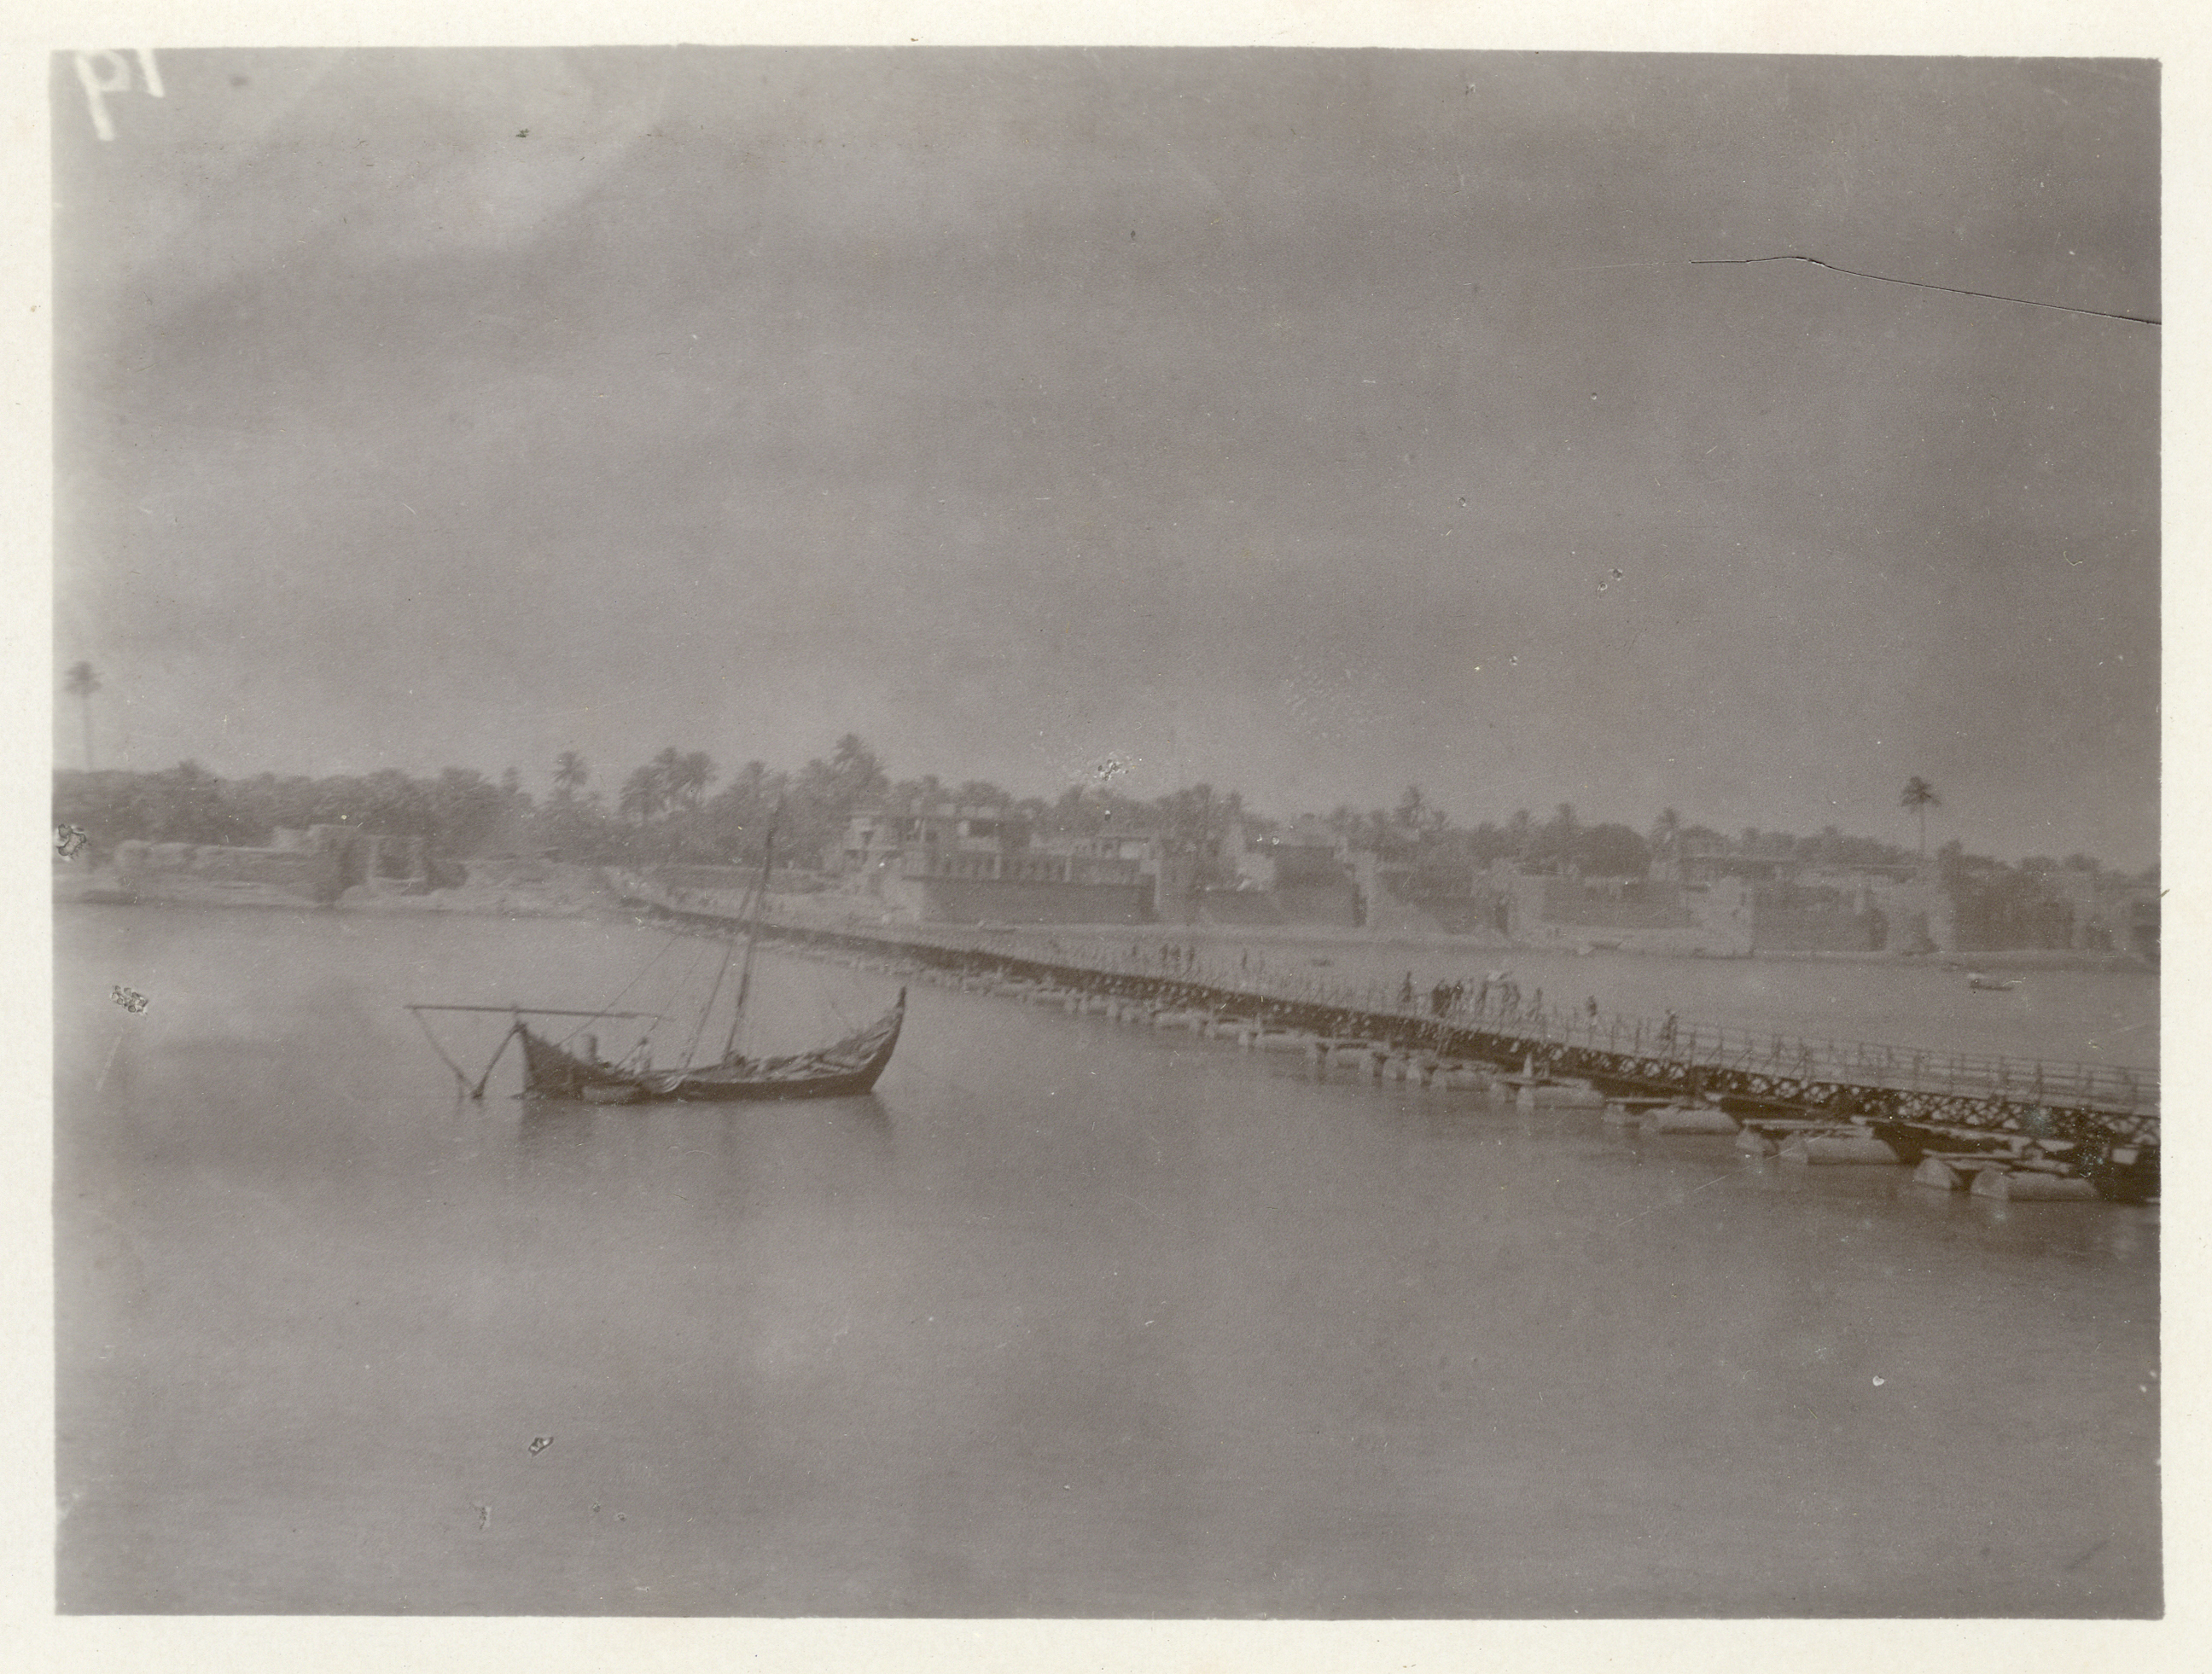 Uncaptioned boat and jetty - with the Garhwal Rifles in Mesopotamia (Iraq) early 1917